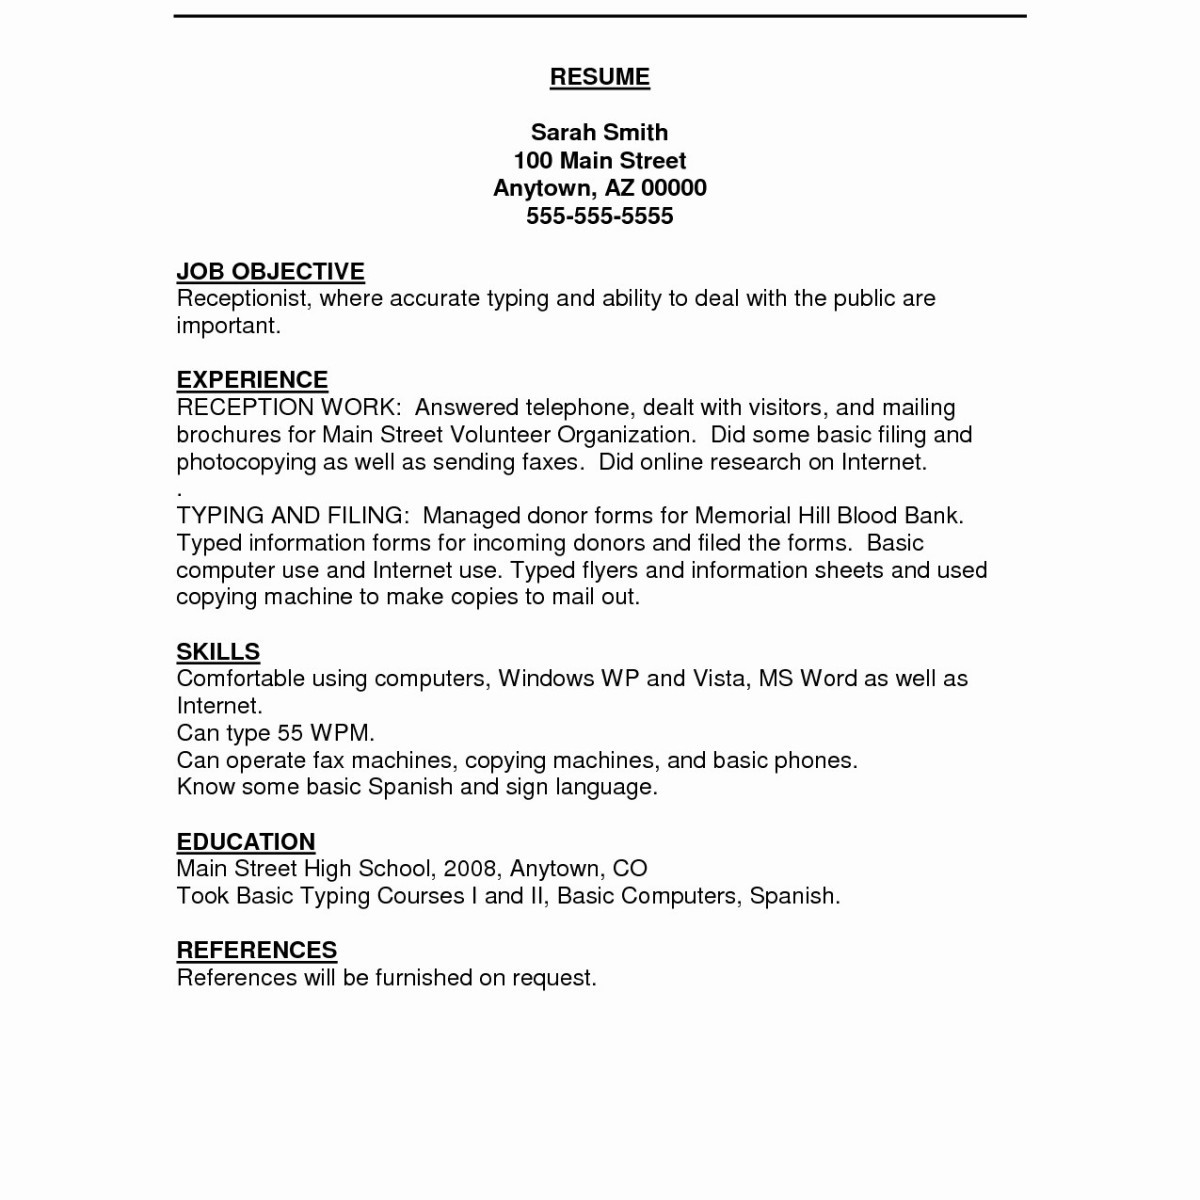 Resume Examples for Receptionist Job - Information Technology Resume Examples Cute Technical Resume